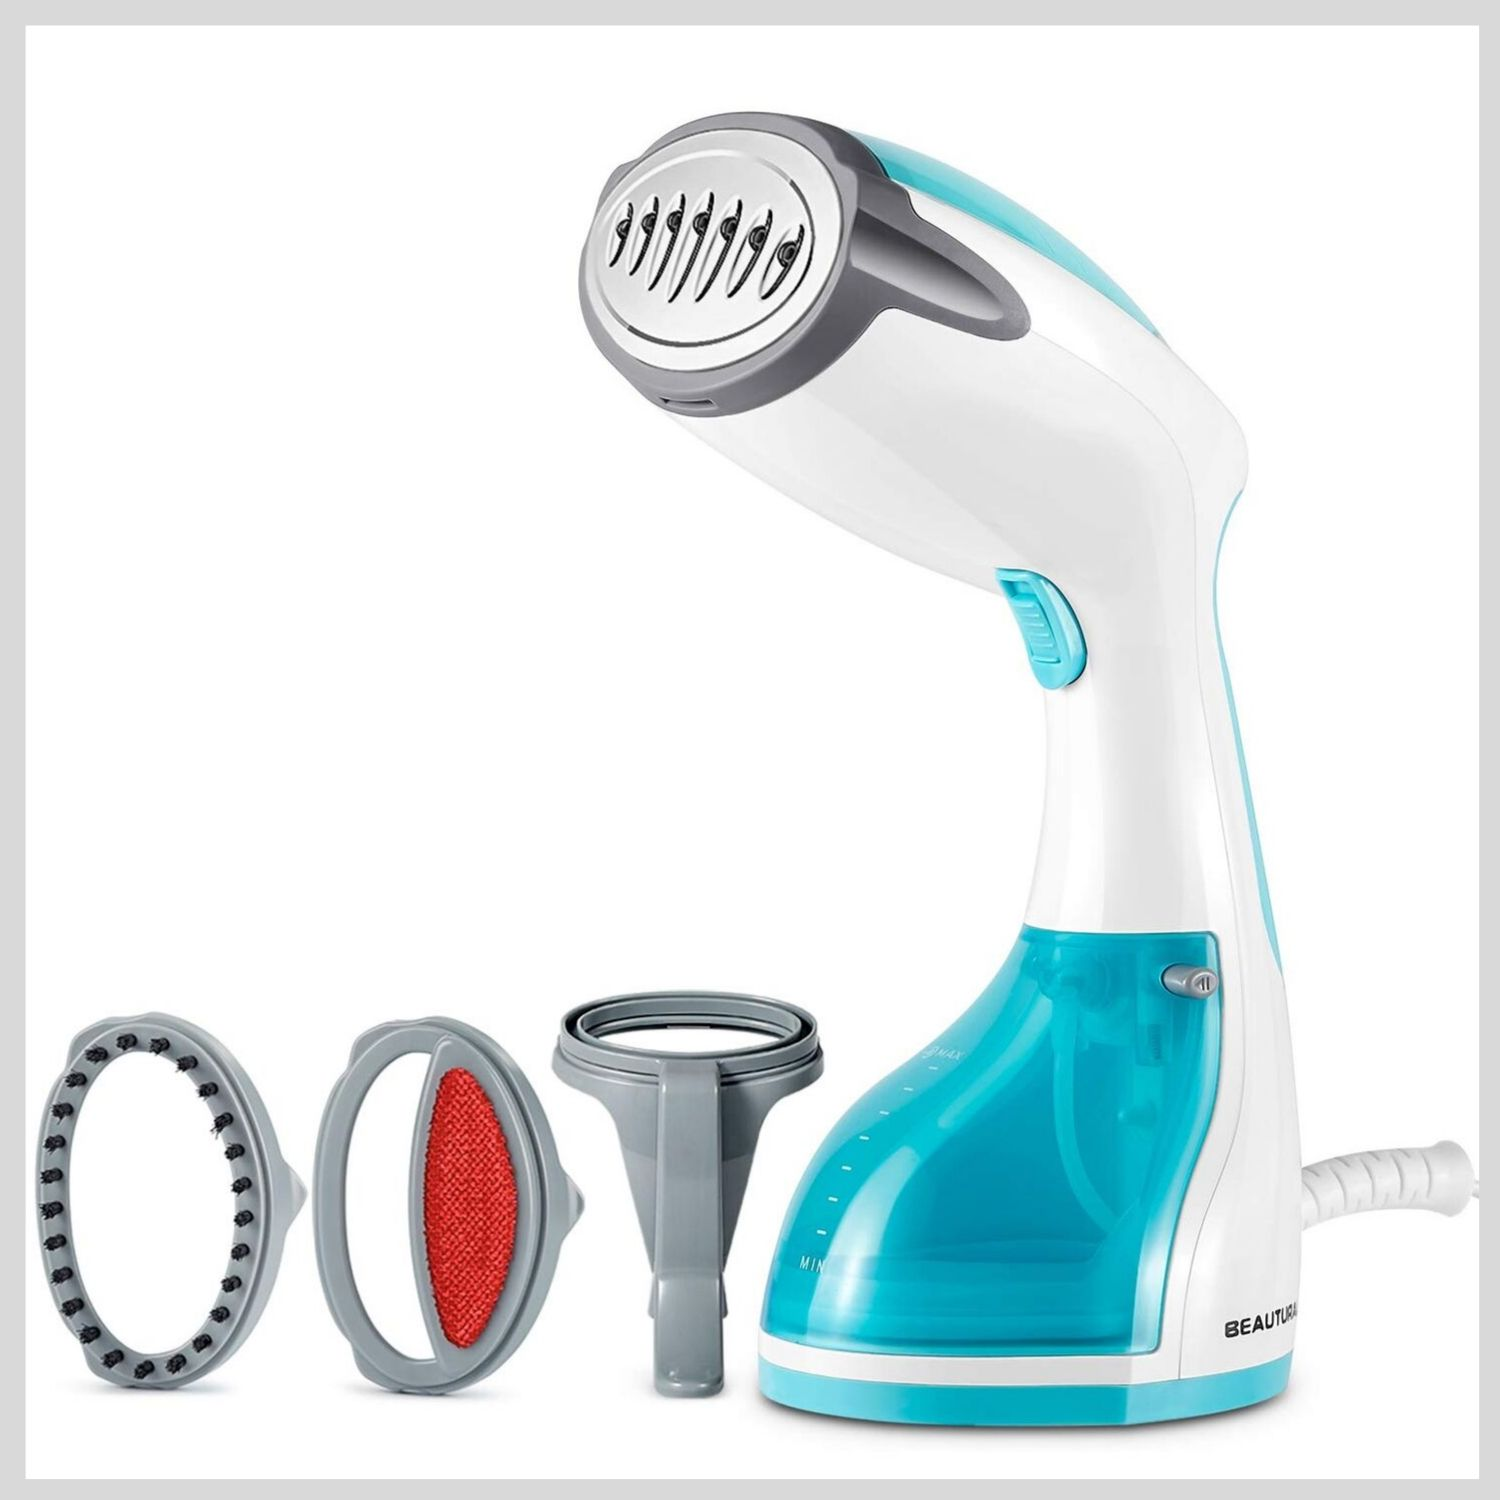 BEAUTURAL 1200-Watt Handheld Steamer